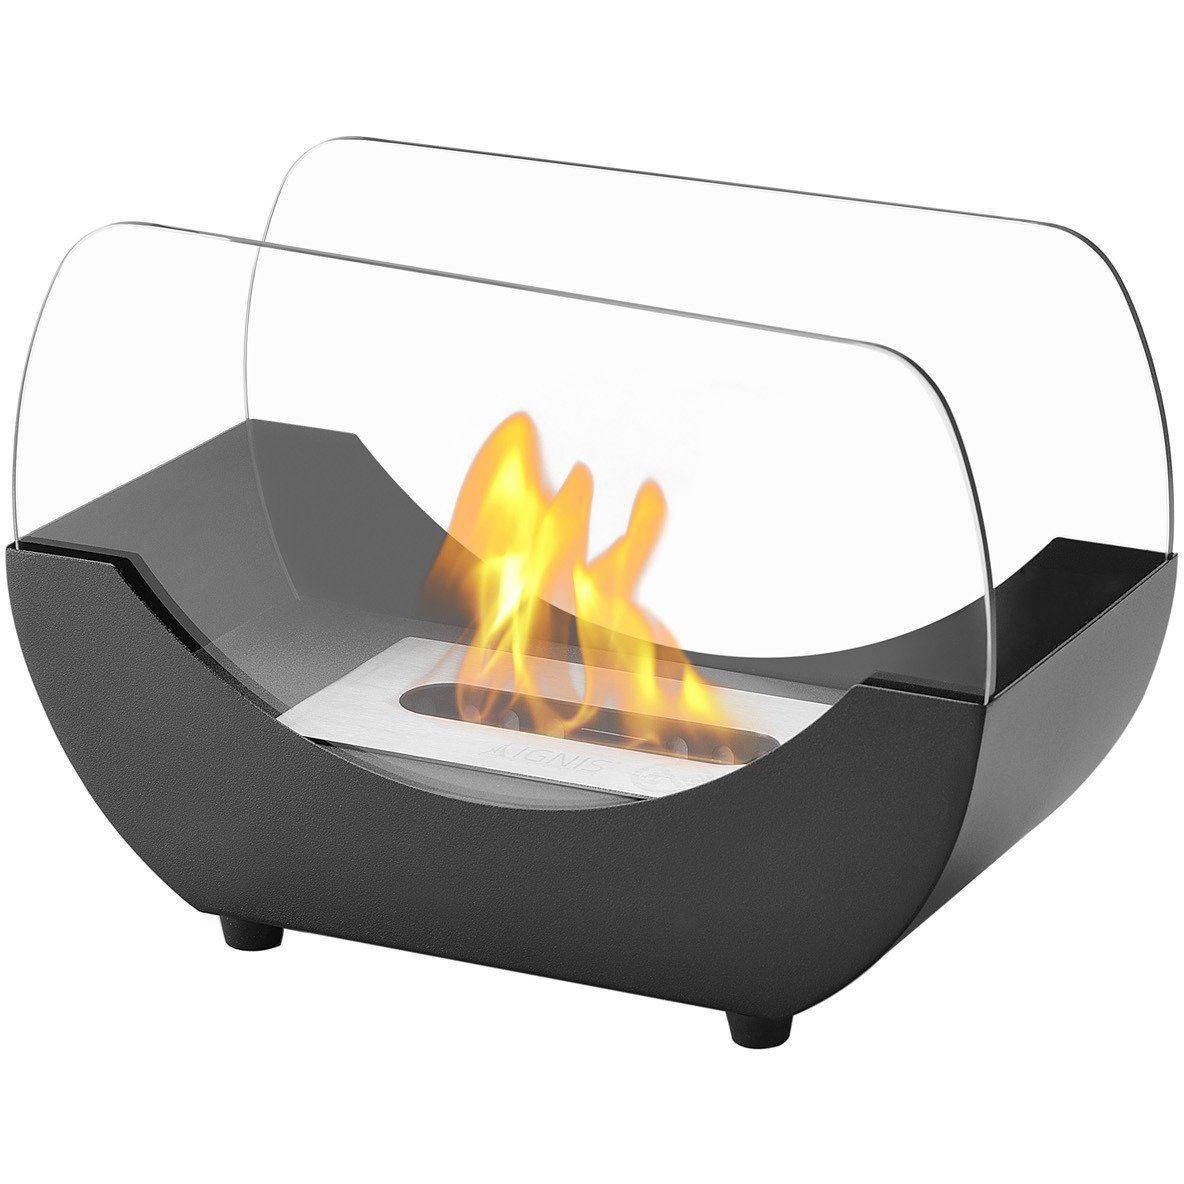 Portable Tabletop Fireplace Awesome Liberty Black Tabletop Ventless Ethanol Fireplace